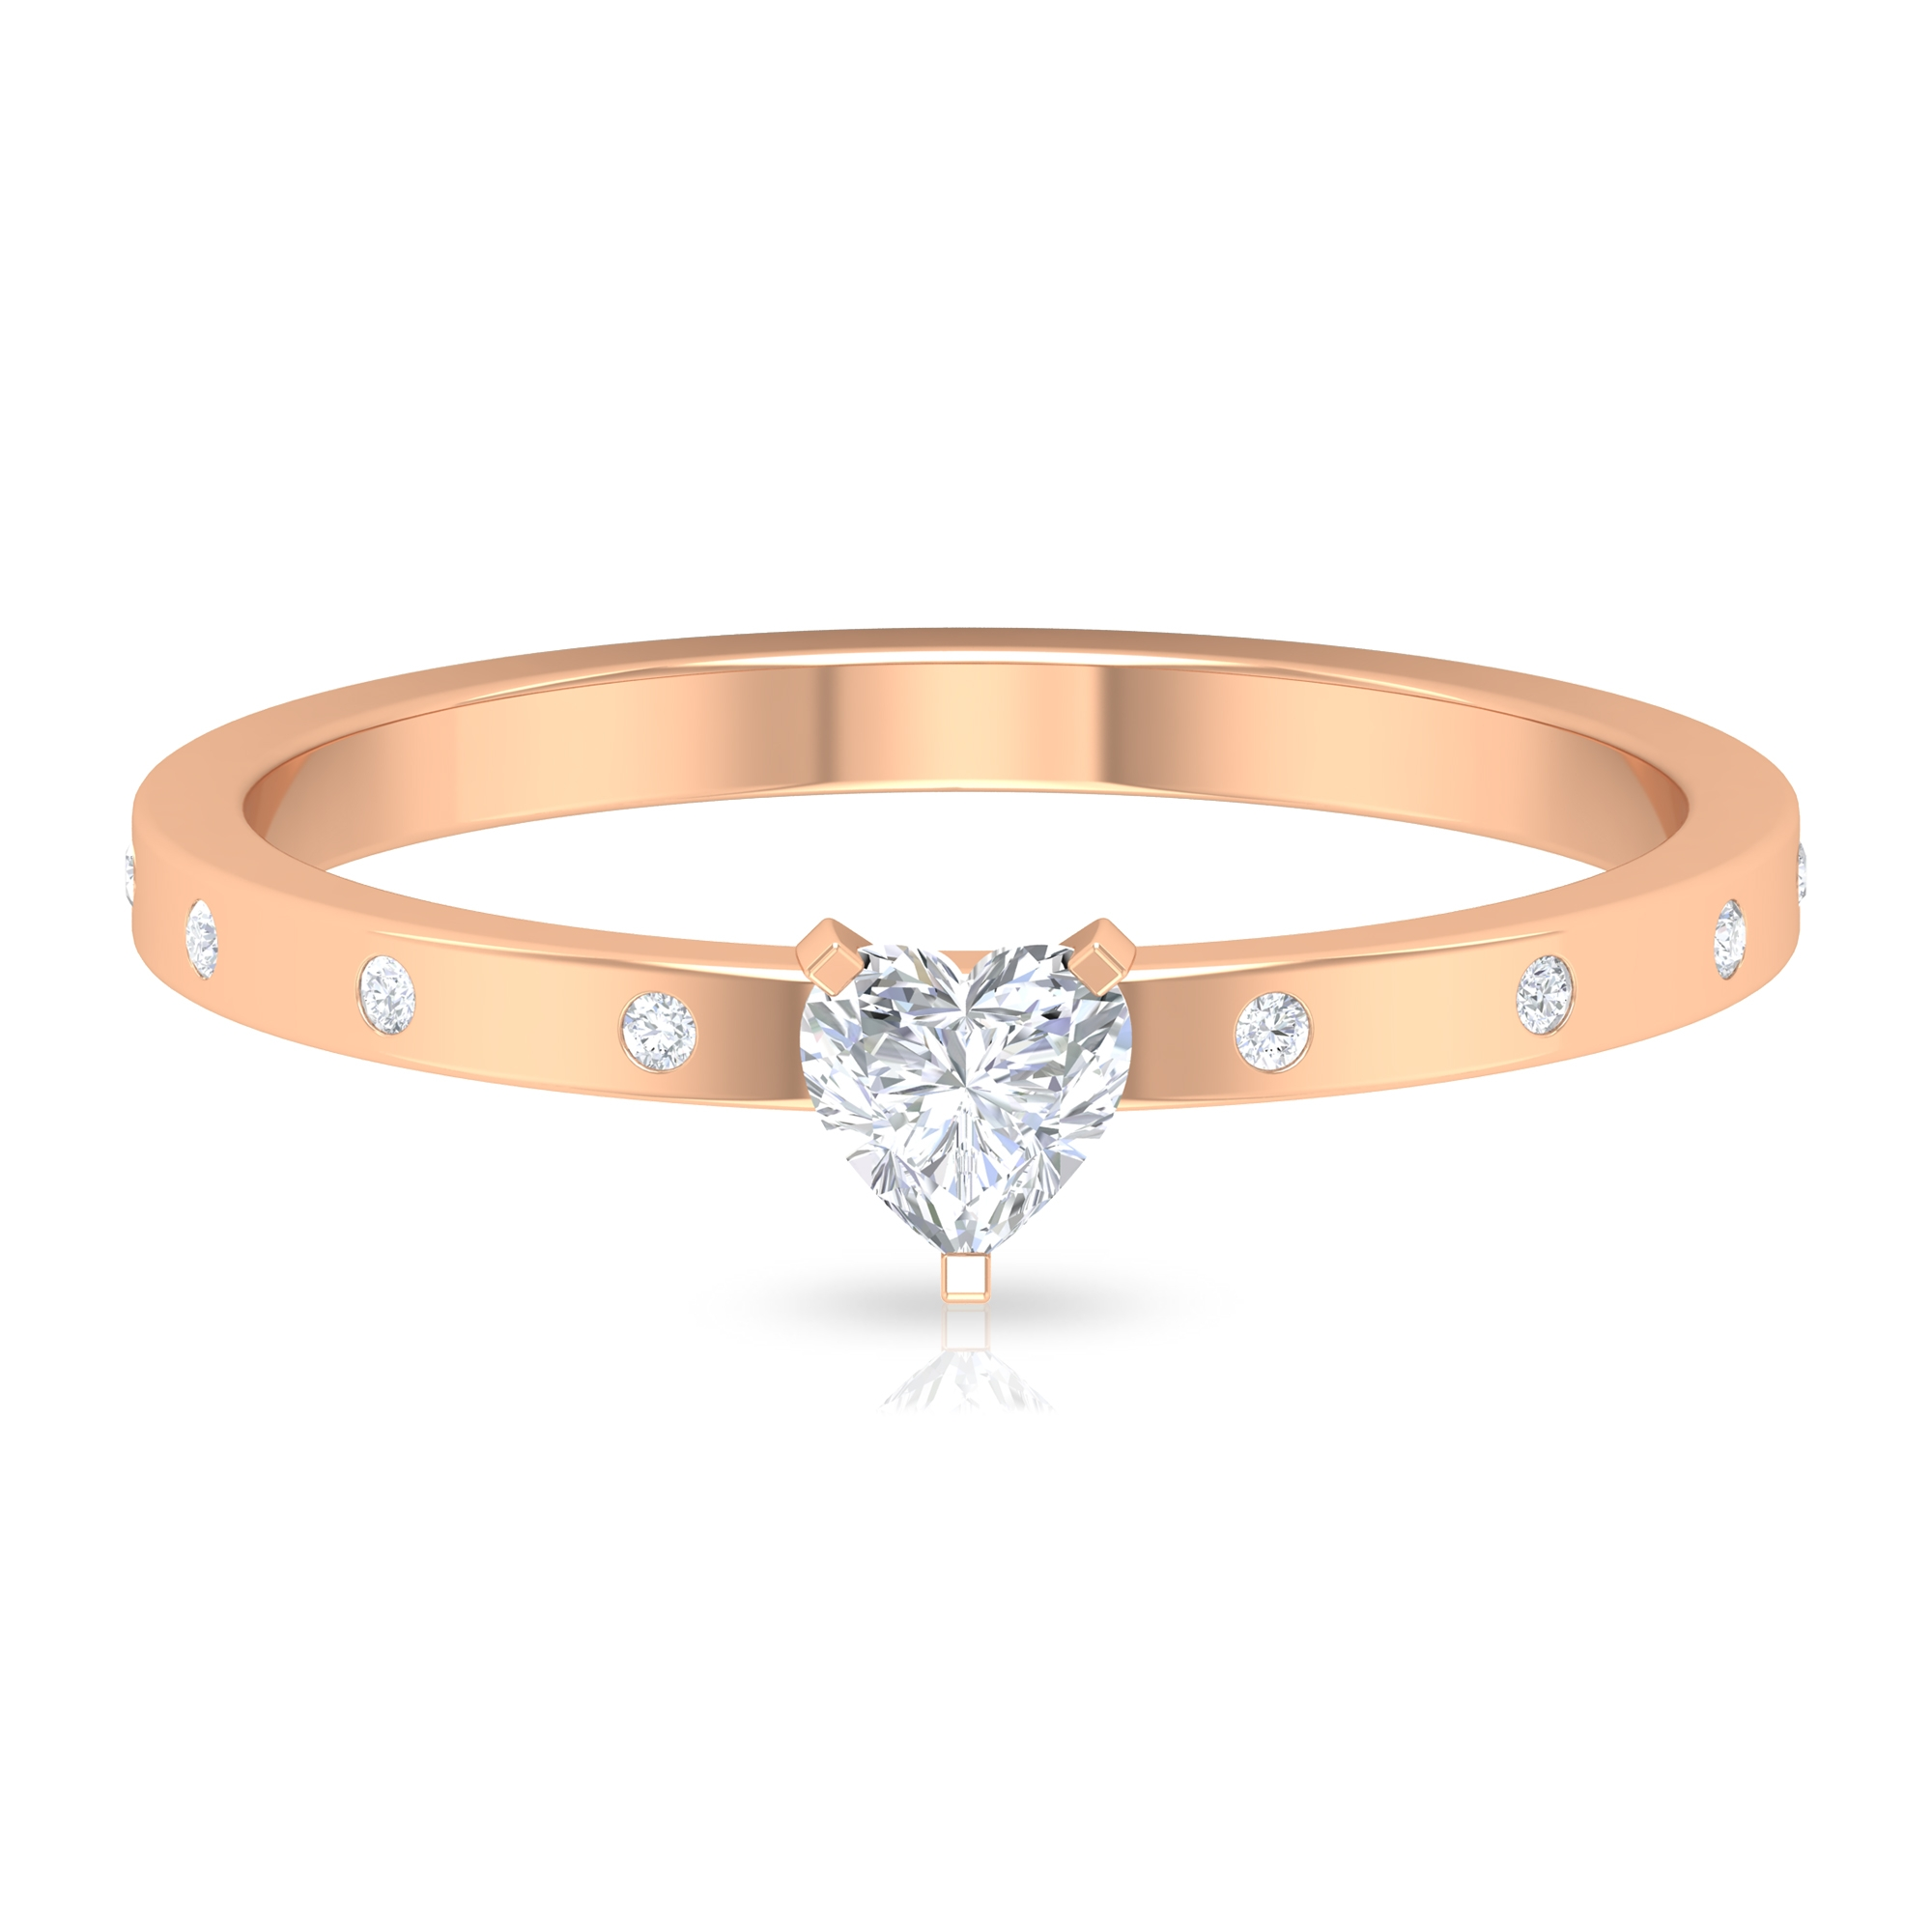 1/2 CT Heart Shape Diamond Solitaire Ring in 3 Prong Peg Head Setting with Sleek Accent